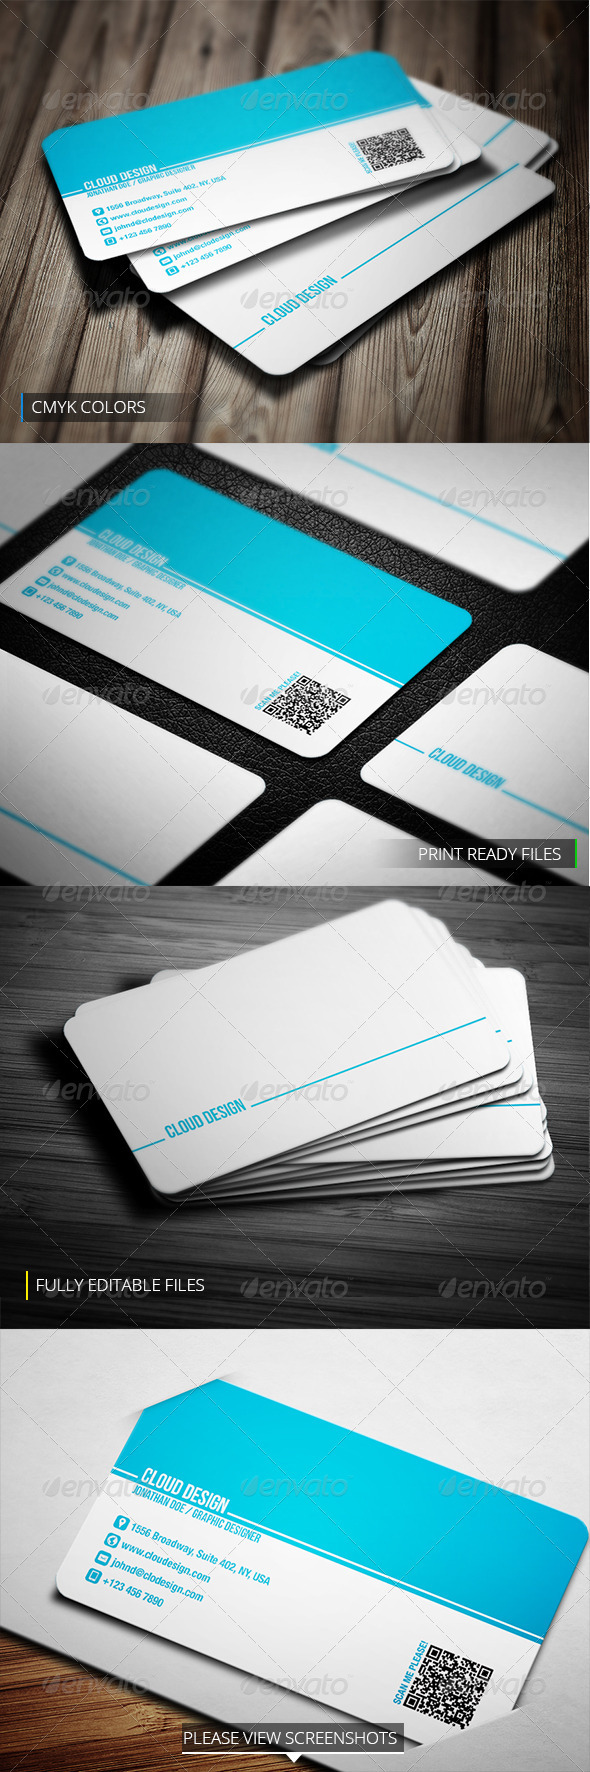 GraphicRiver Corporate Business Card 3851240